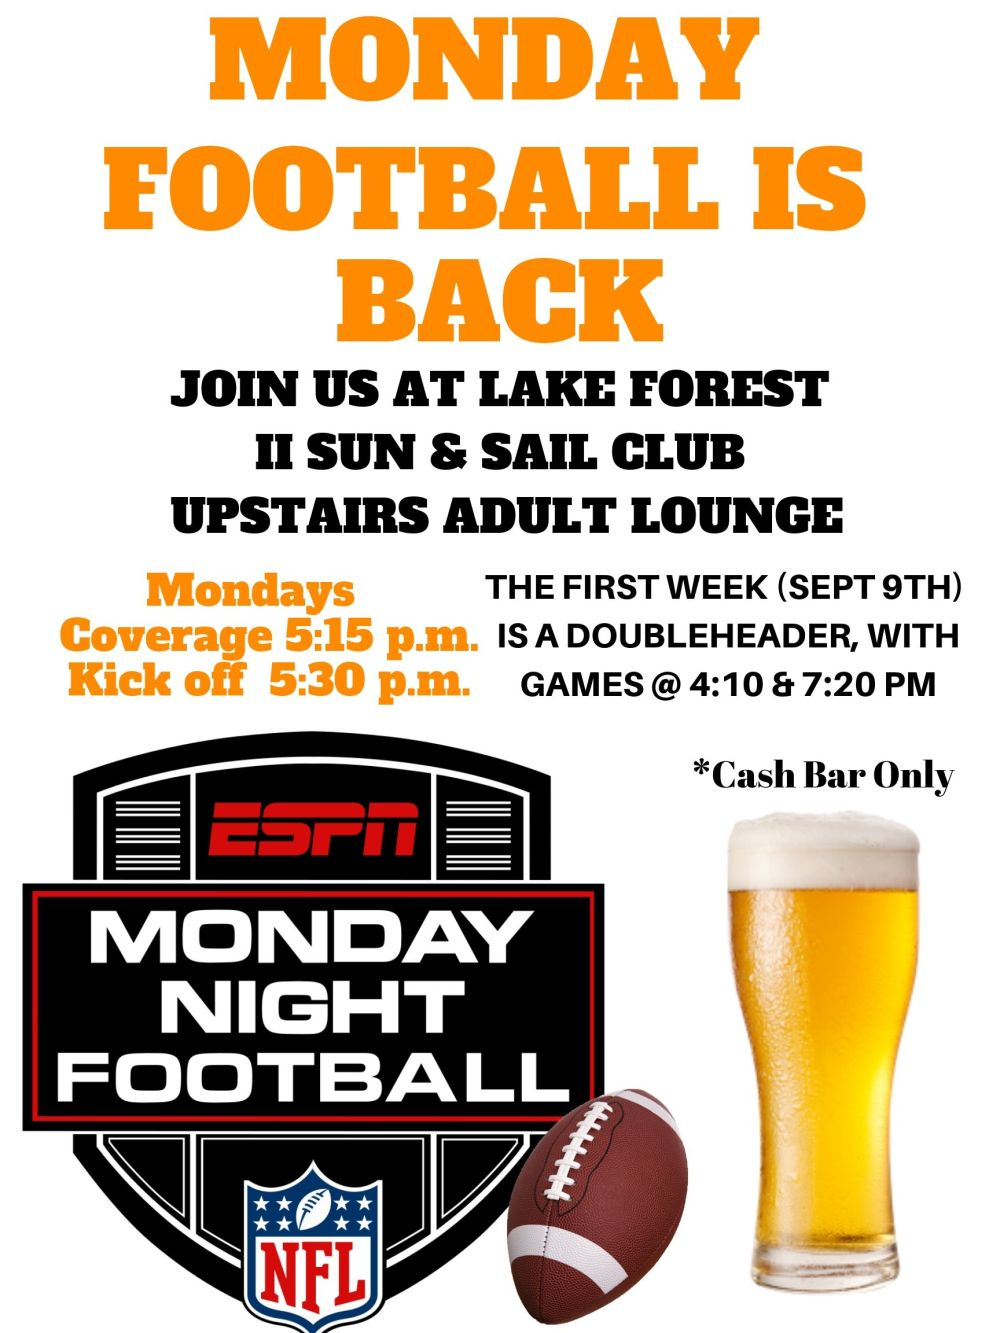 MONDAY FOOTBALL IS BACK